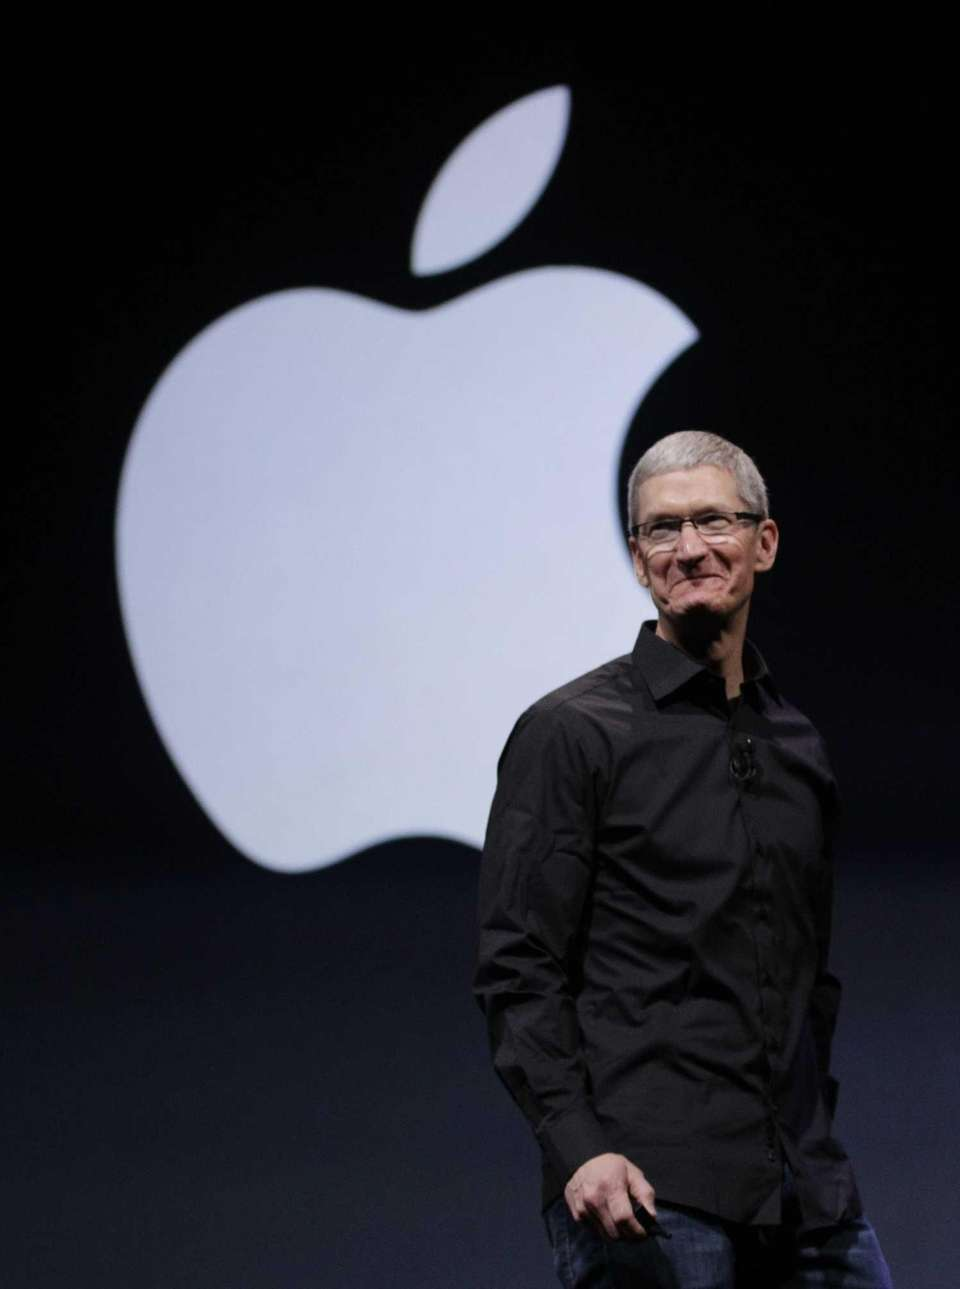 Apple CEO Tim Cook walks on stage at